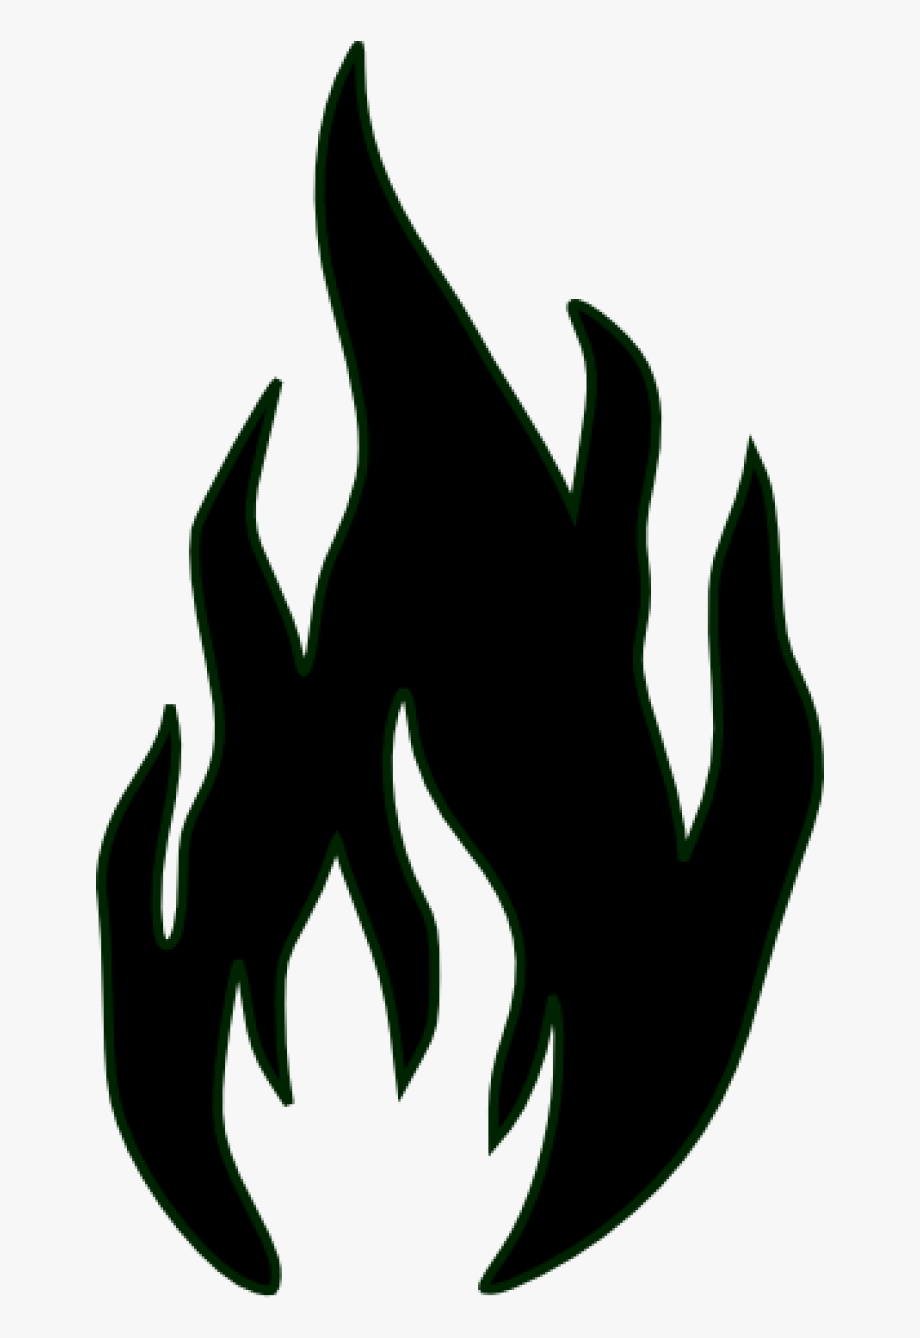 Fire flame outline . Flames clipart black and white